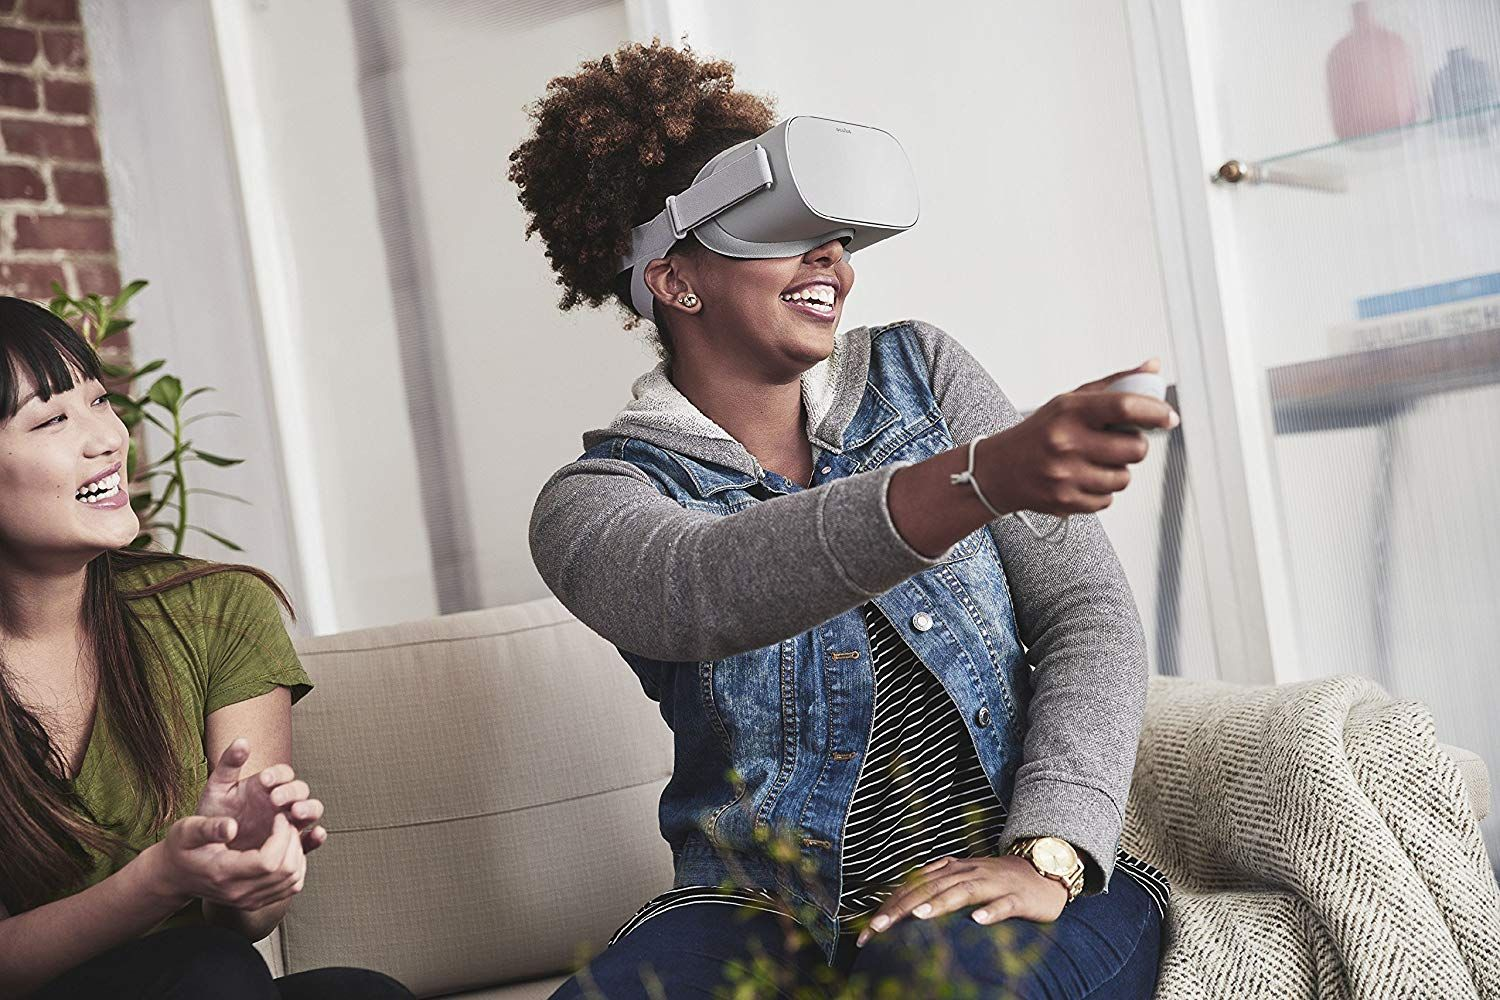 21 Cyber Monday - Oculus Go Standalone Virtual Reality Headse